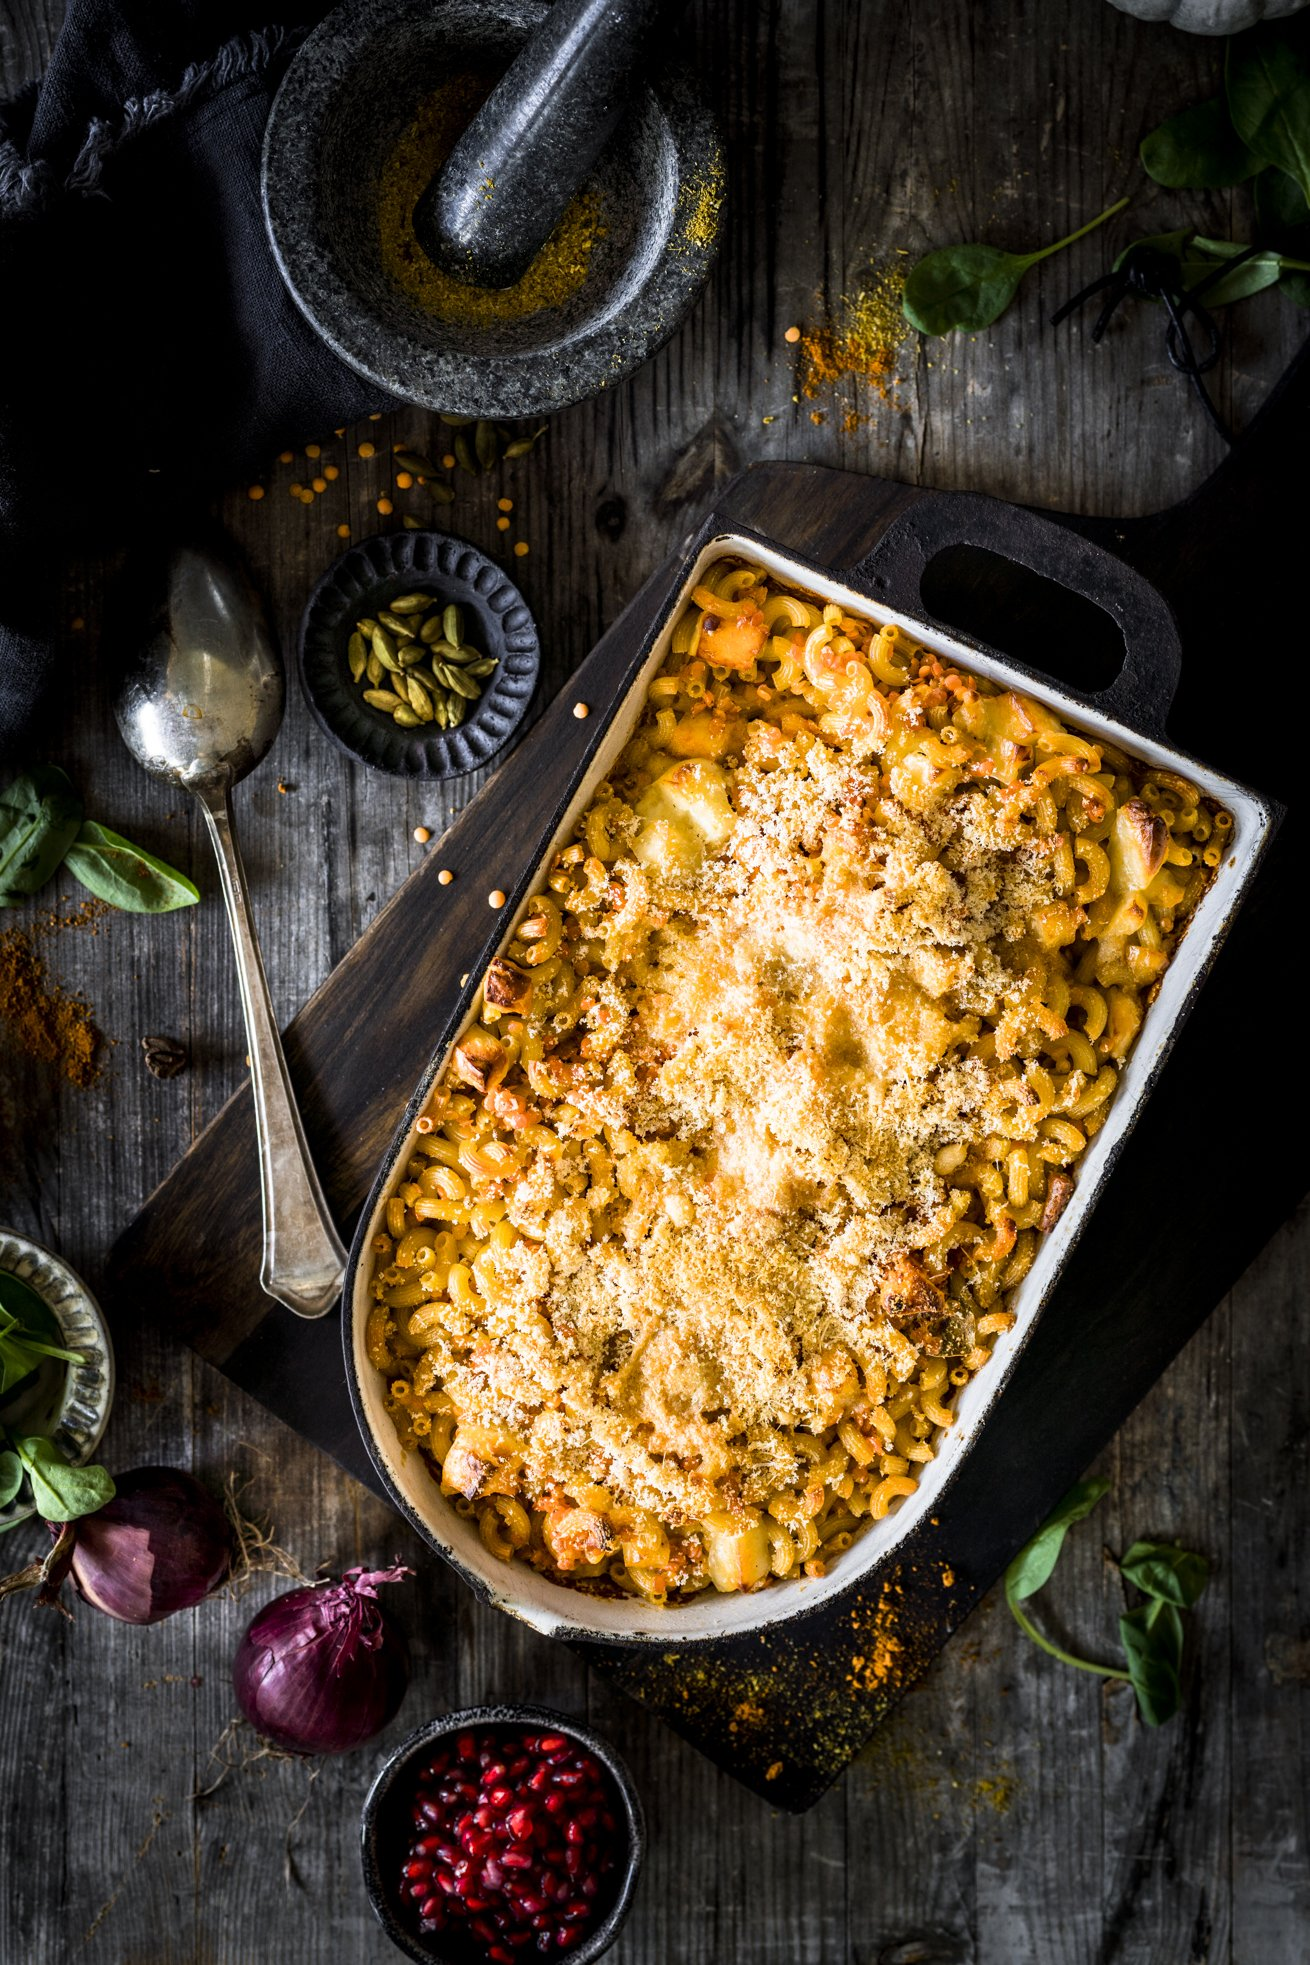 Baked Mac'n Cheese